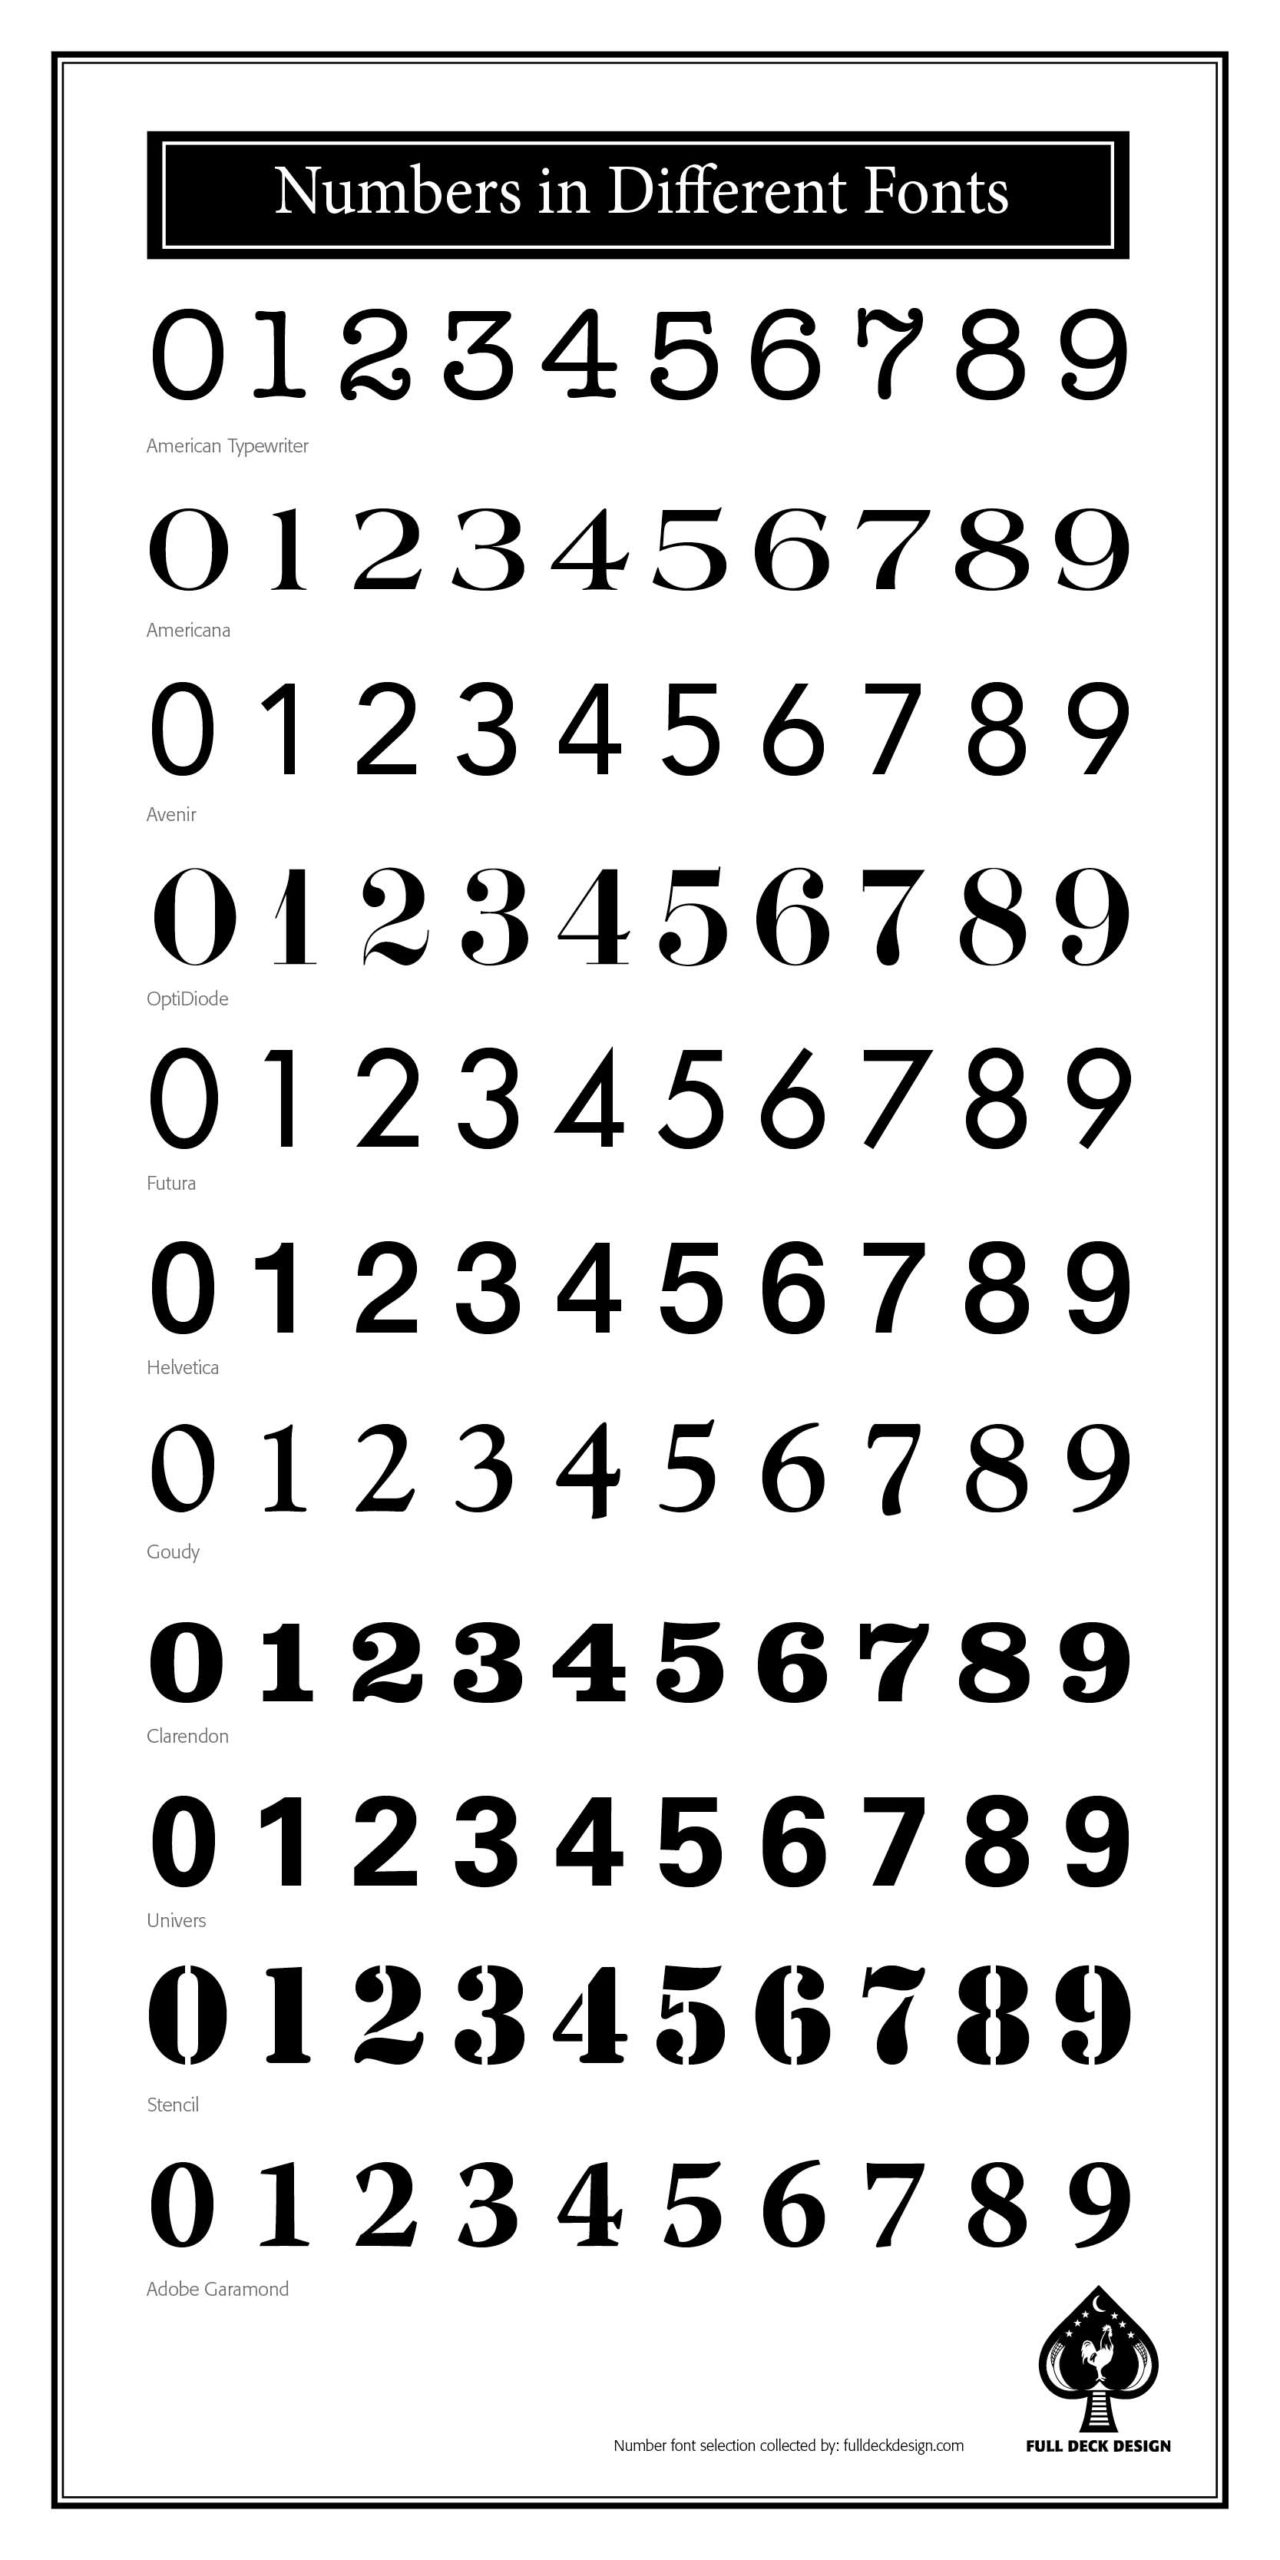 Image showing numbers in 10 different fonts